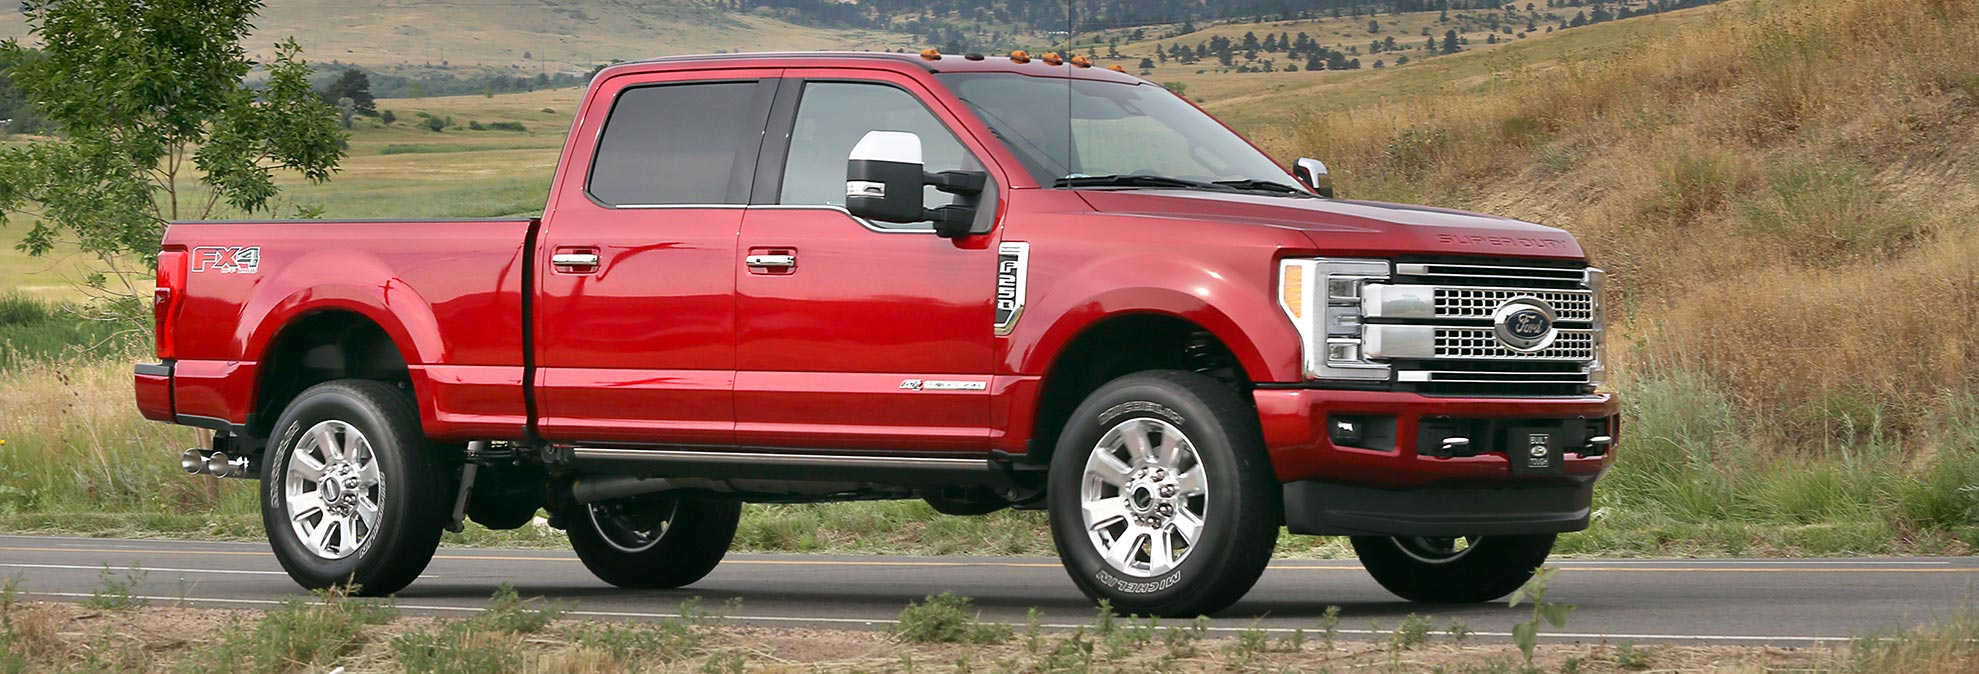 2017 Ford F 250 Pickup Truck Shaves Weight Adds